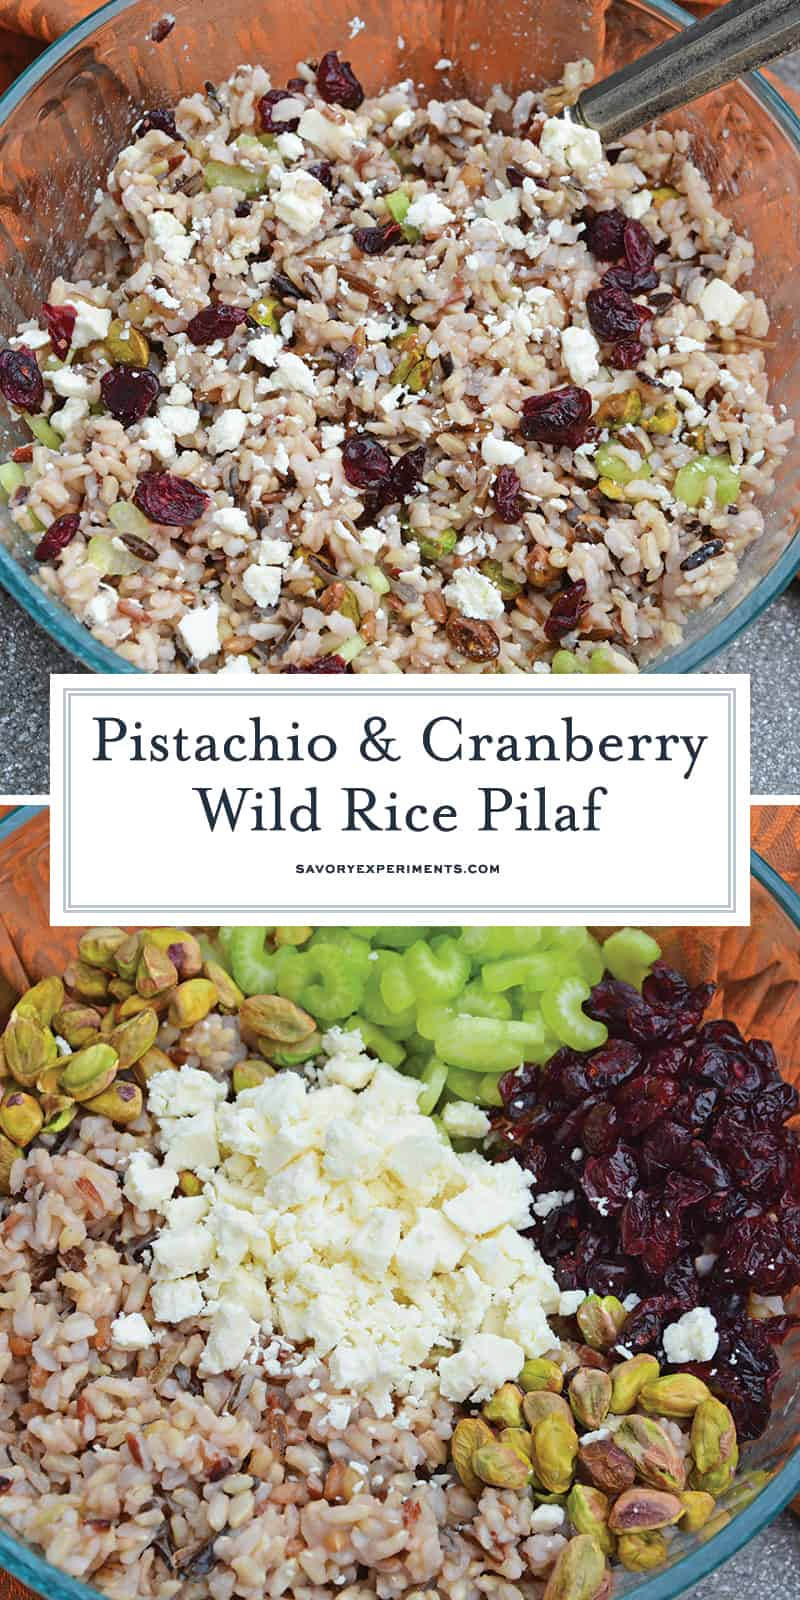 This Wild Rice Pilaf recipe is an easy side dish for your next potluck, picnic or dinner. Quick and easy to make in advance it's the best rice pilaf recipe! #wildricepilaf #ricepilafrecipe www.savoryexperiments.com